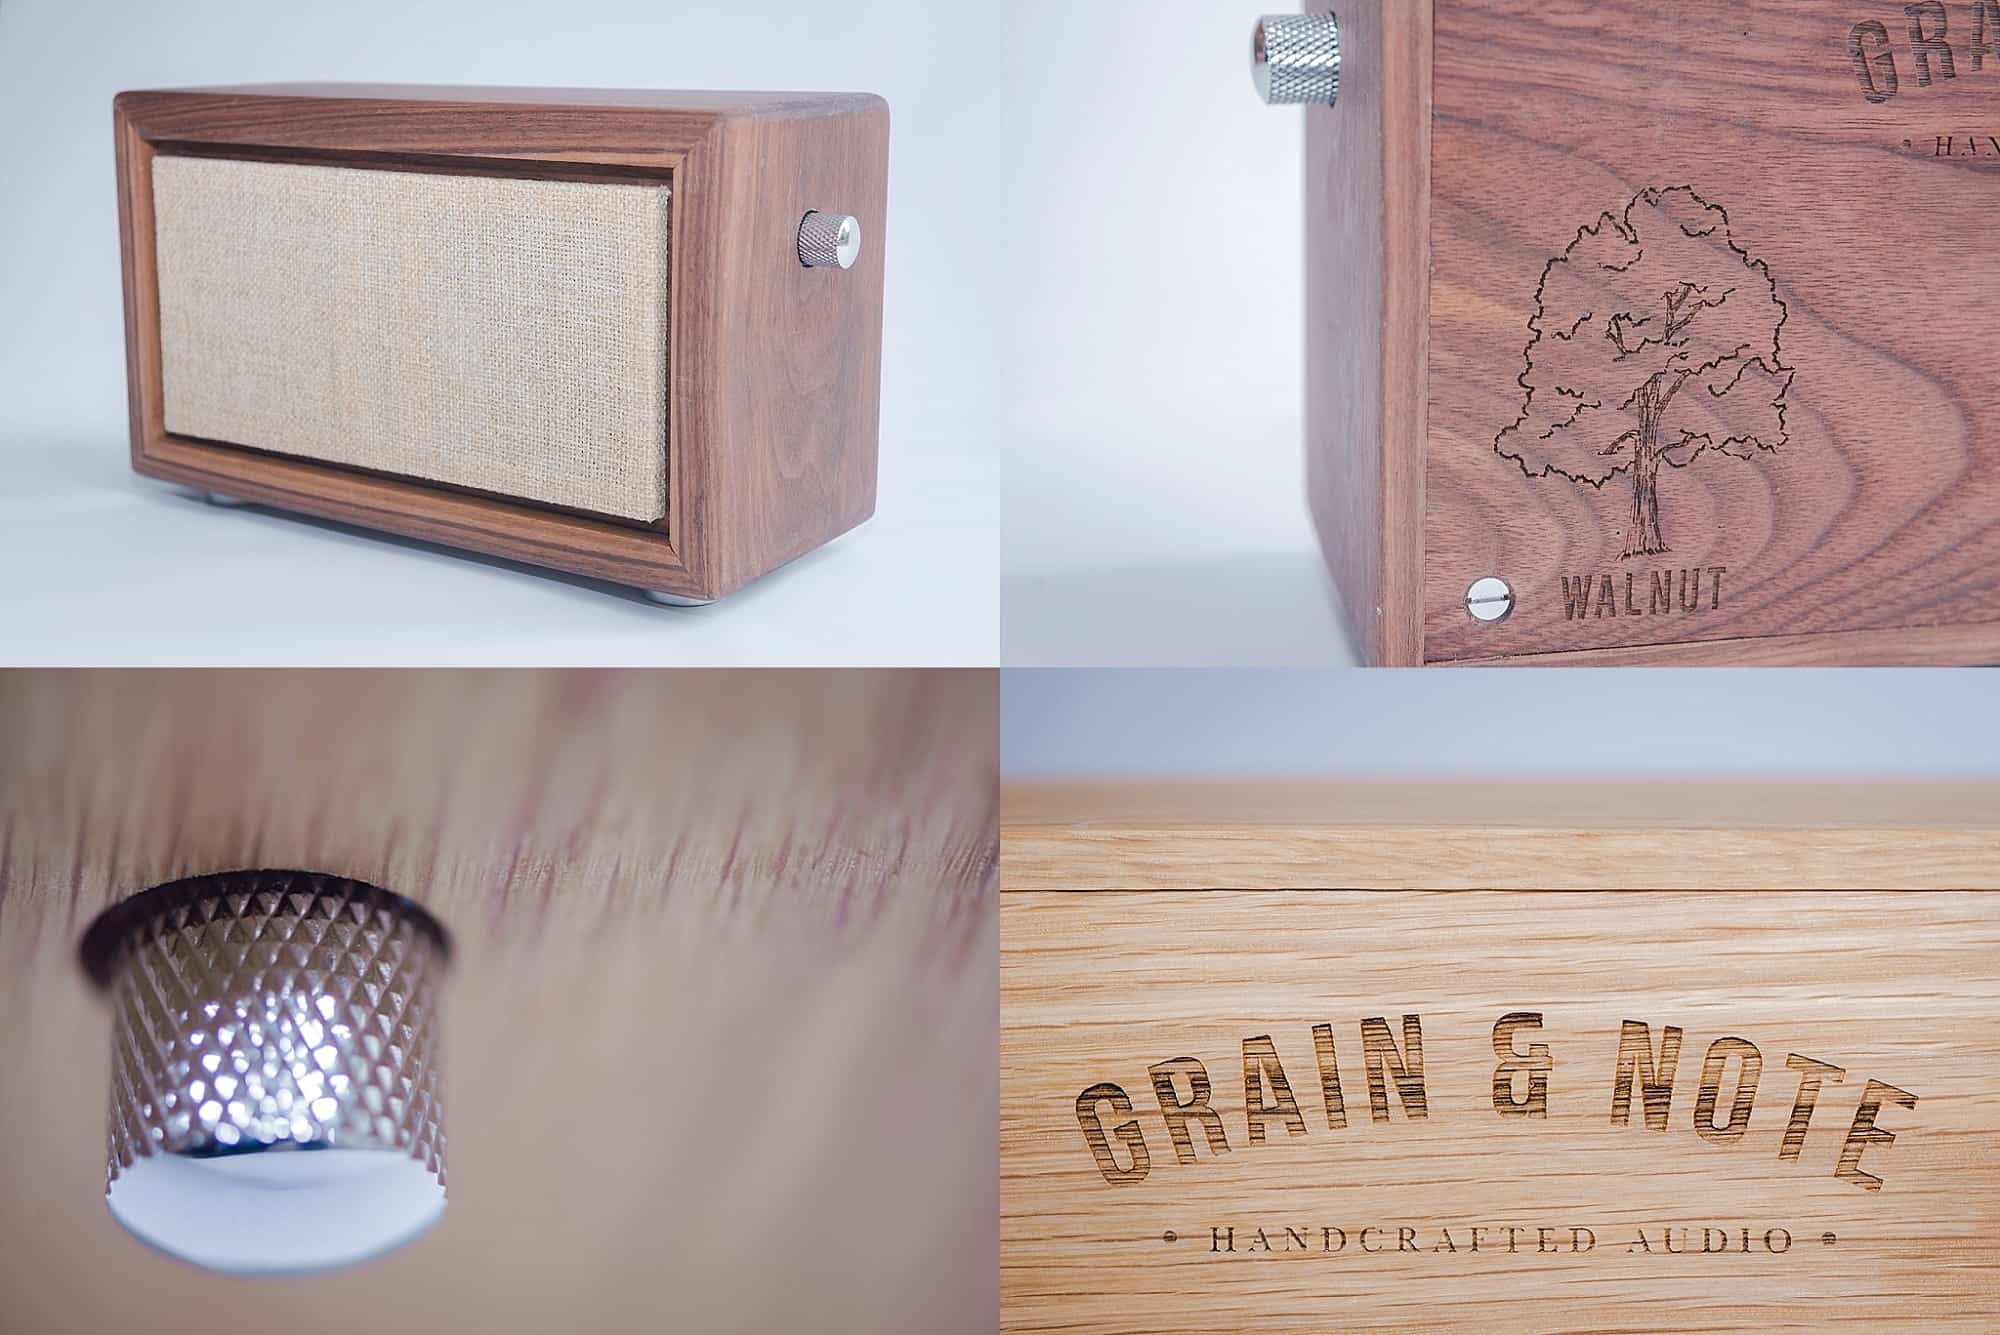 Product photographs of speakers from different angles for catalogue sales